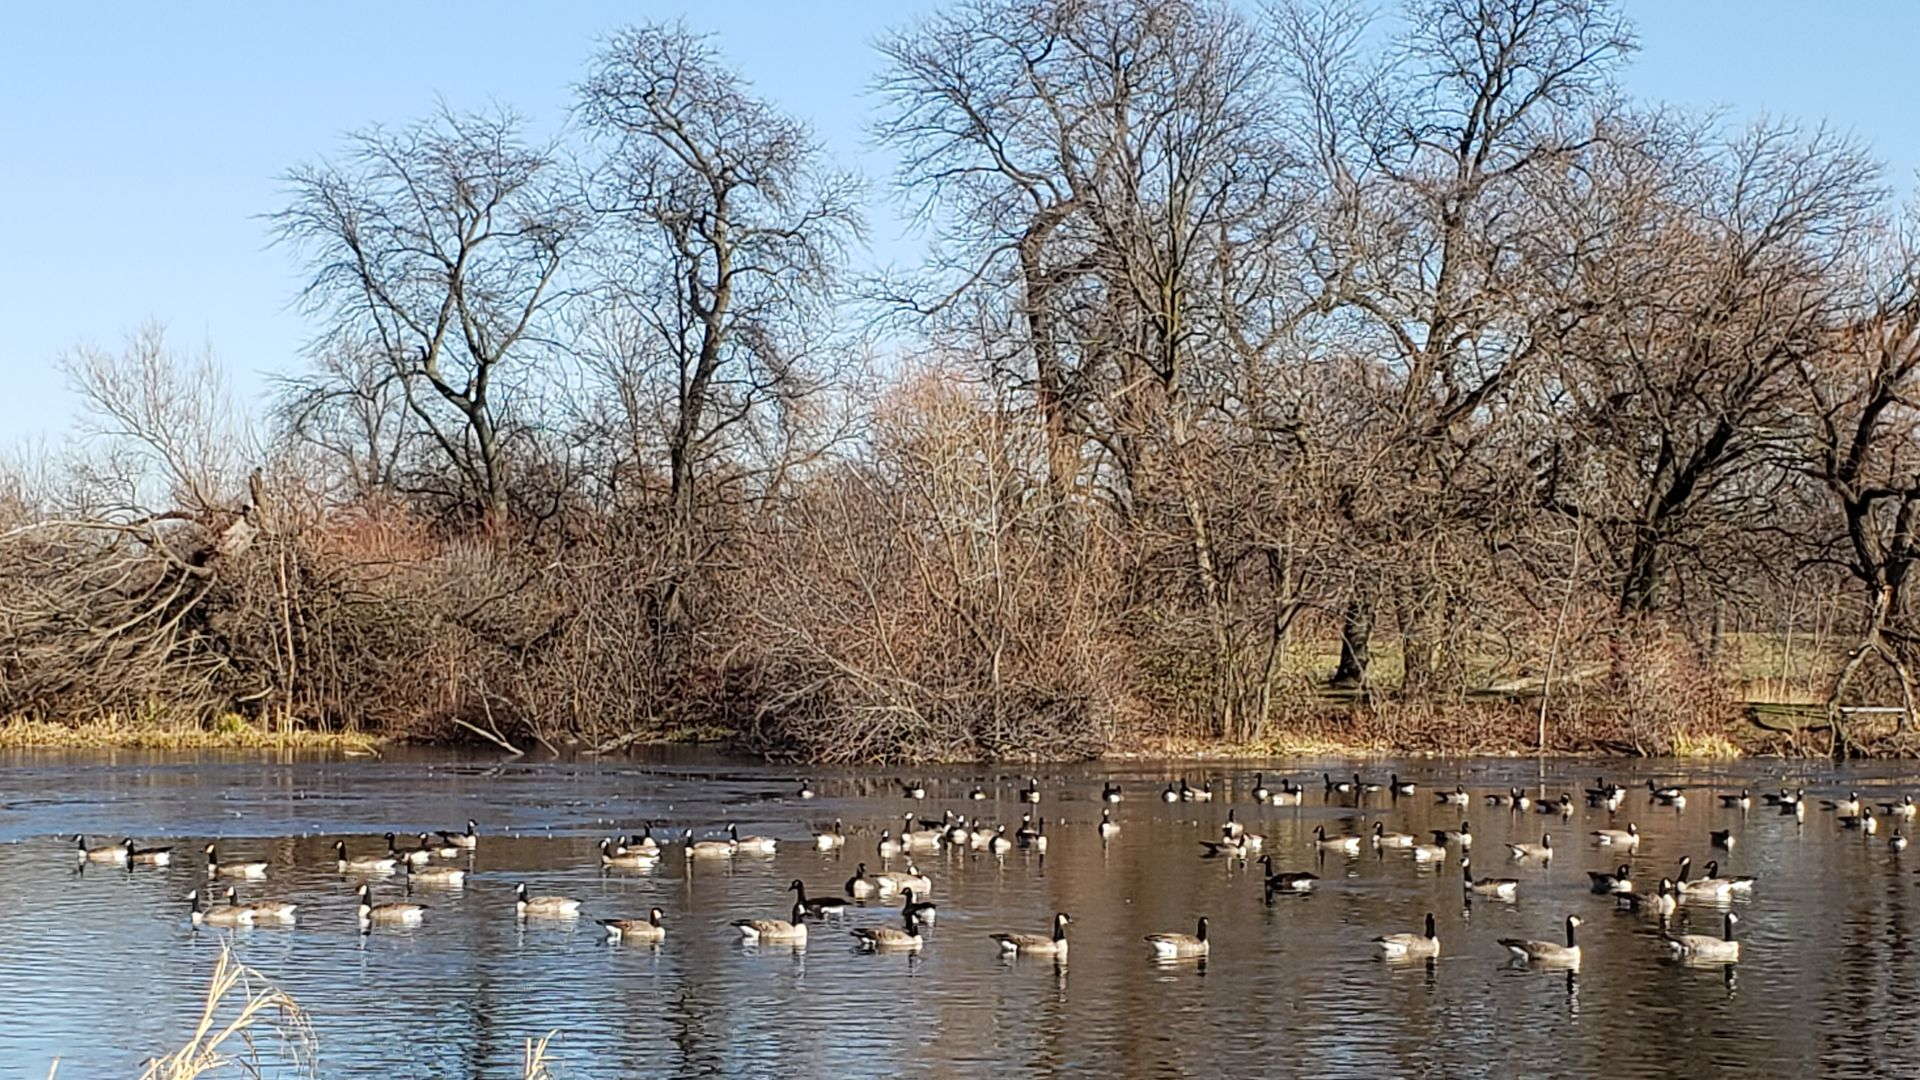 Geese on the water.